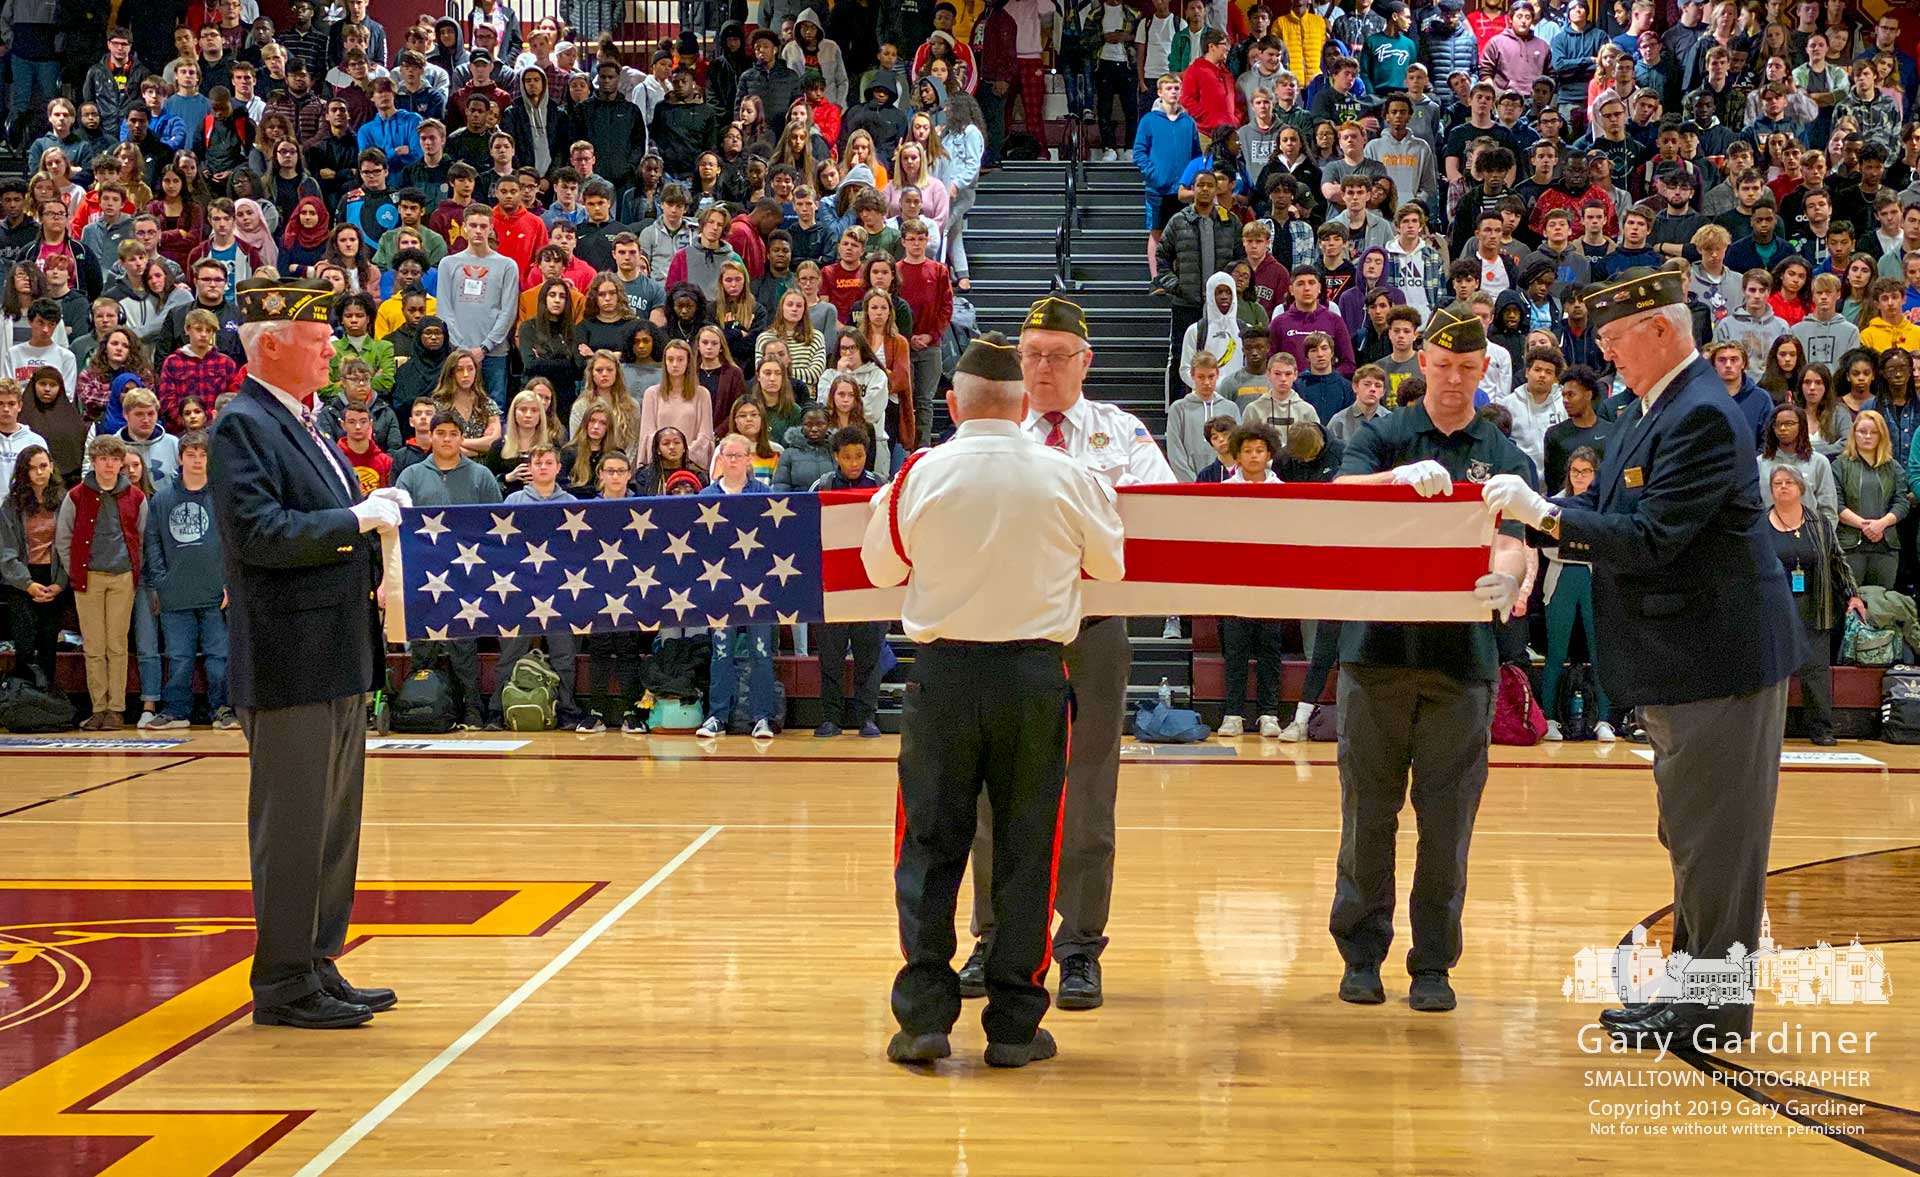 Veterans from Westerville VFW Post 7883 demonstrate and explain folding the American flag during a Veterans Day celebration at Westerville North High School. My Final Photo for Nov. 11, 2019.